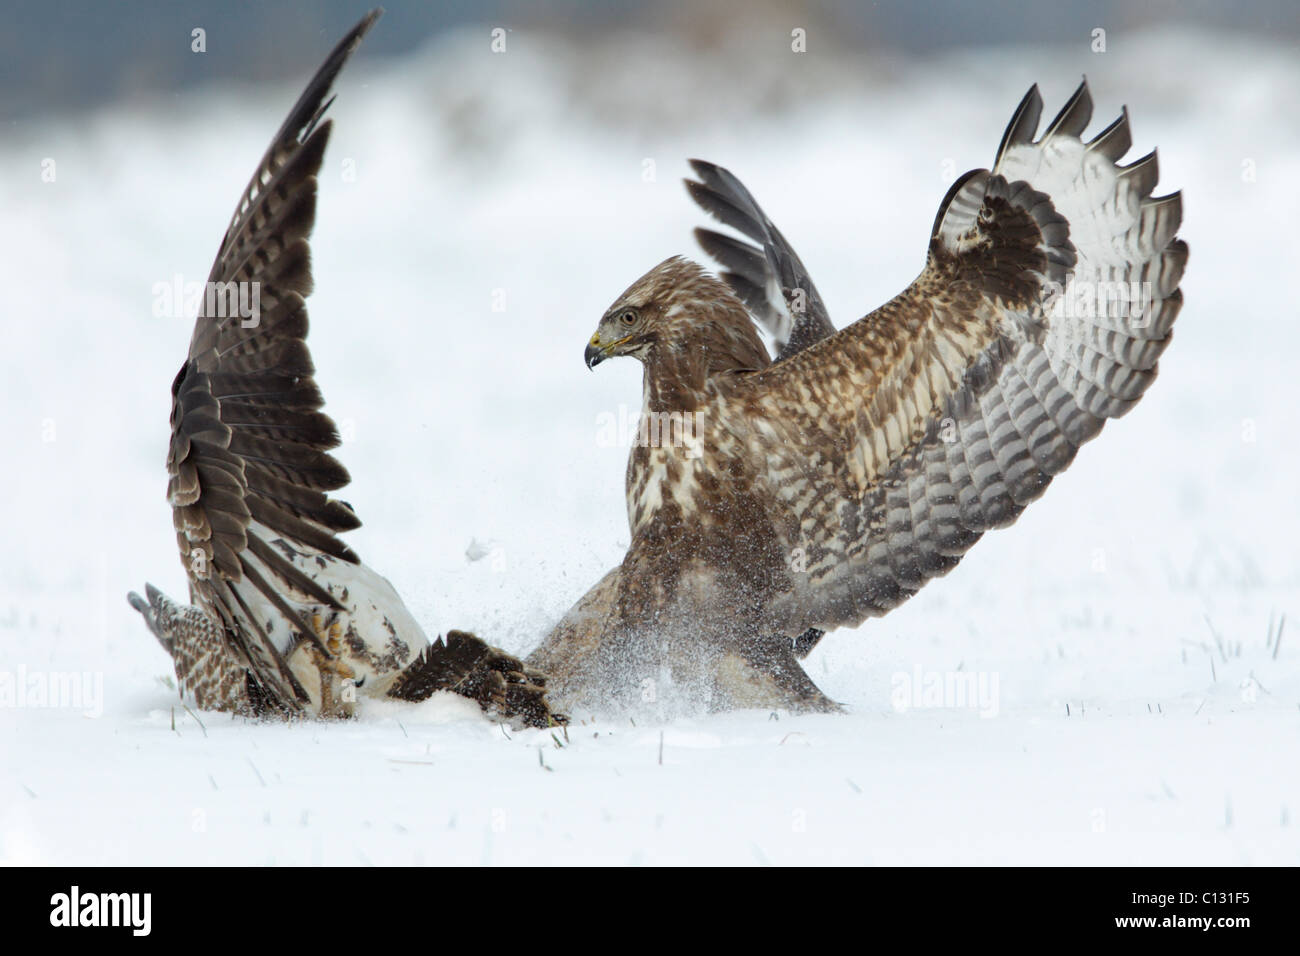 Common Buzzard (Buteo buteo), two fighting over food in winter - Stock Image